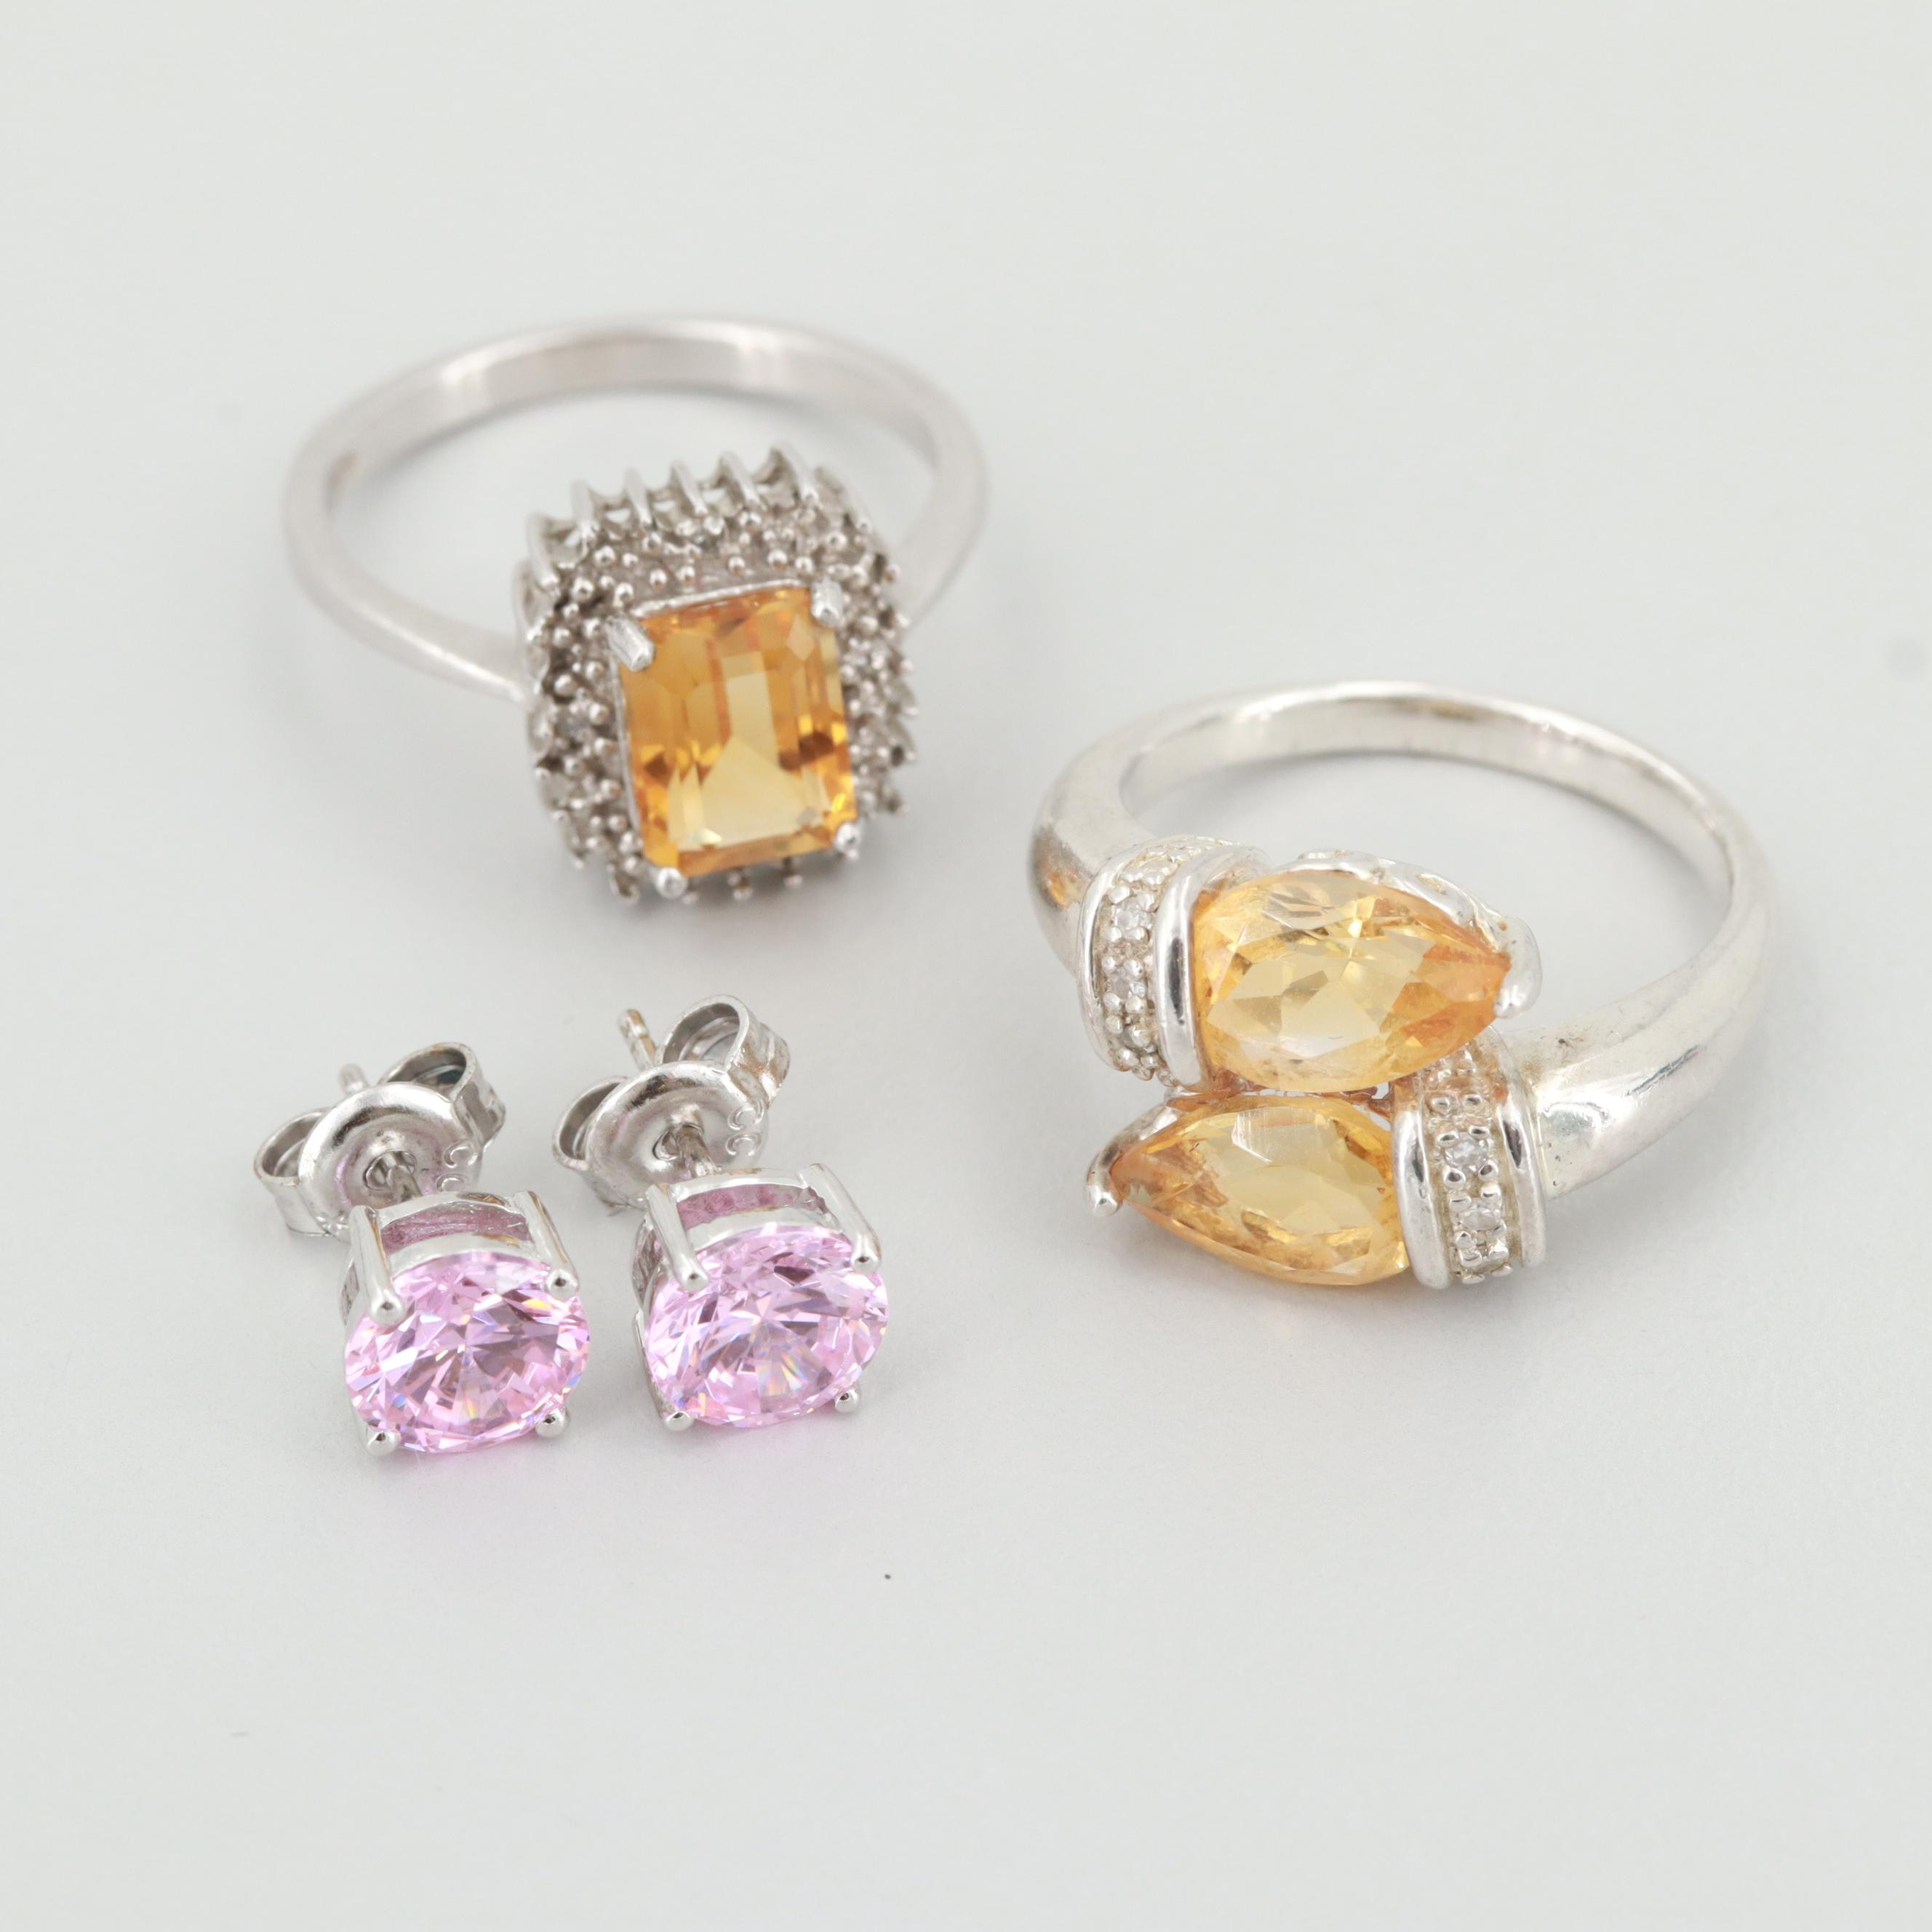 Sterling Silver Rings and Earrings with Diamonds, Citrine and Cubic Zirconia